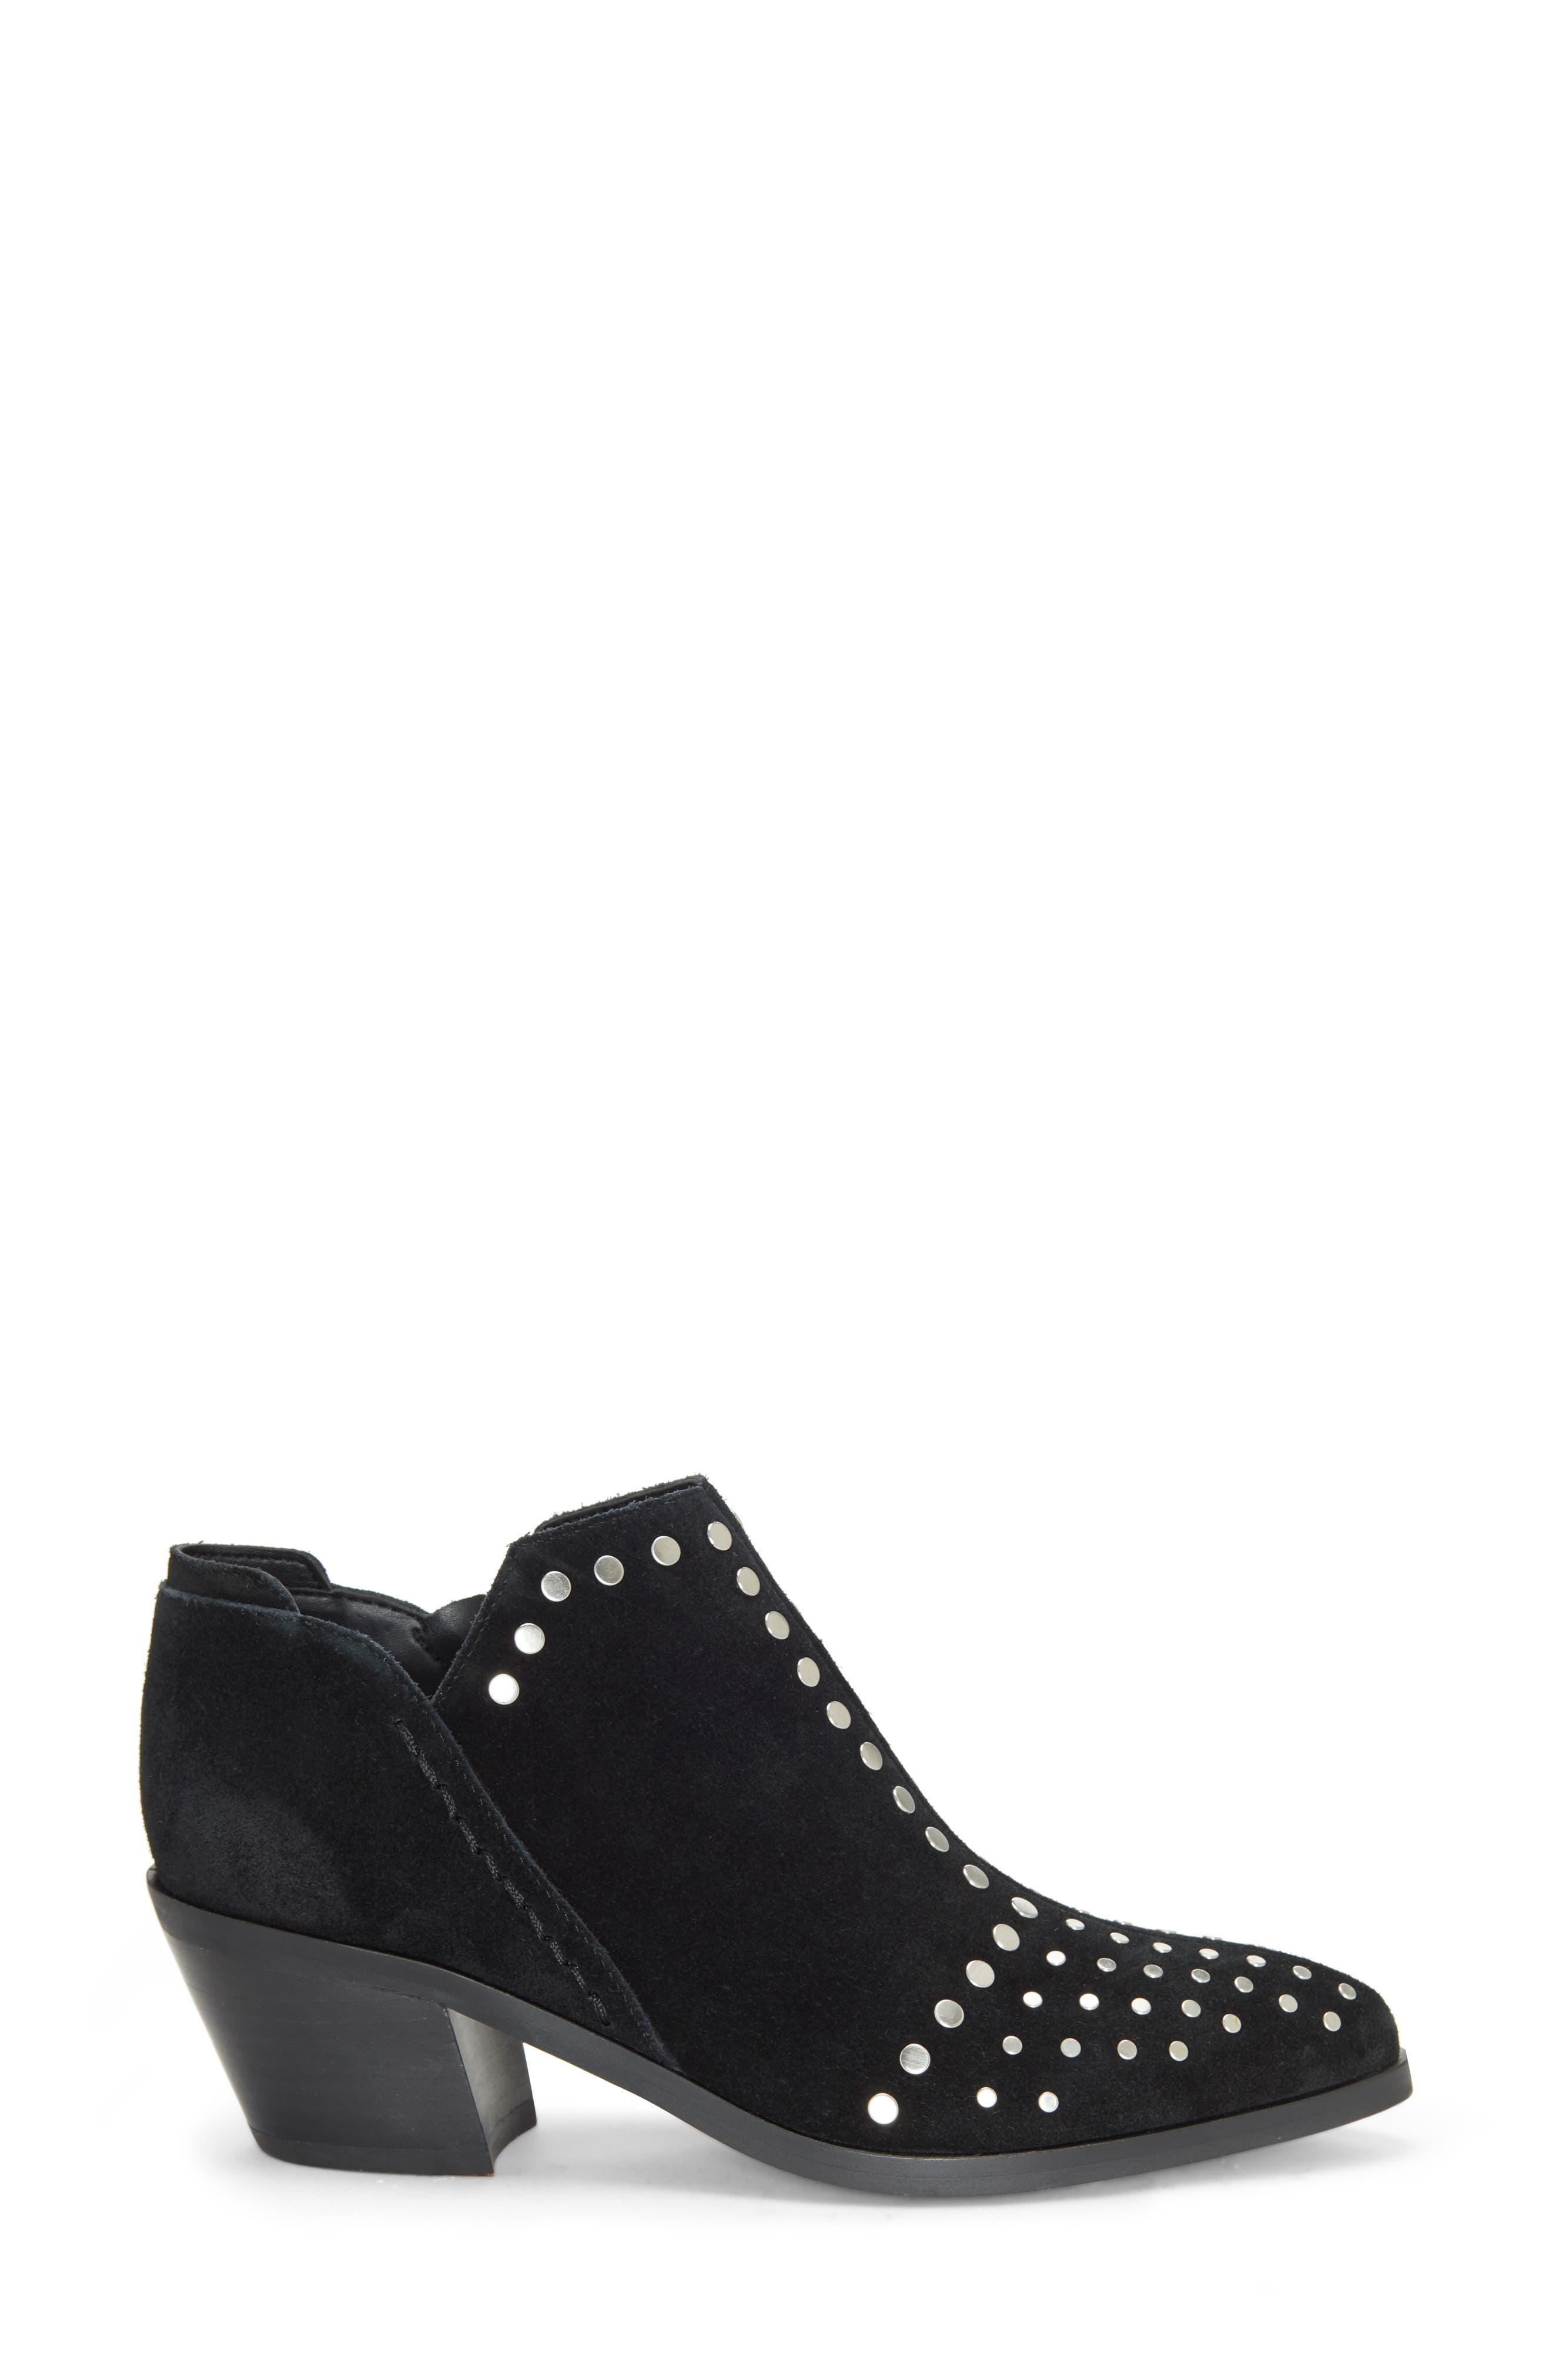 1.STATE, Loka Studded Bootie, Alternate thumbnail 3, color, BLACK SUEDE